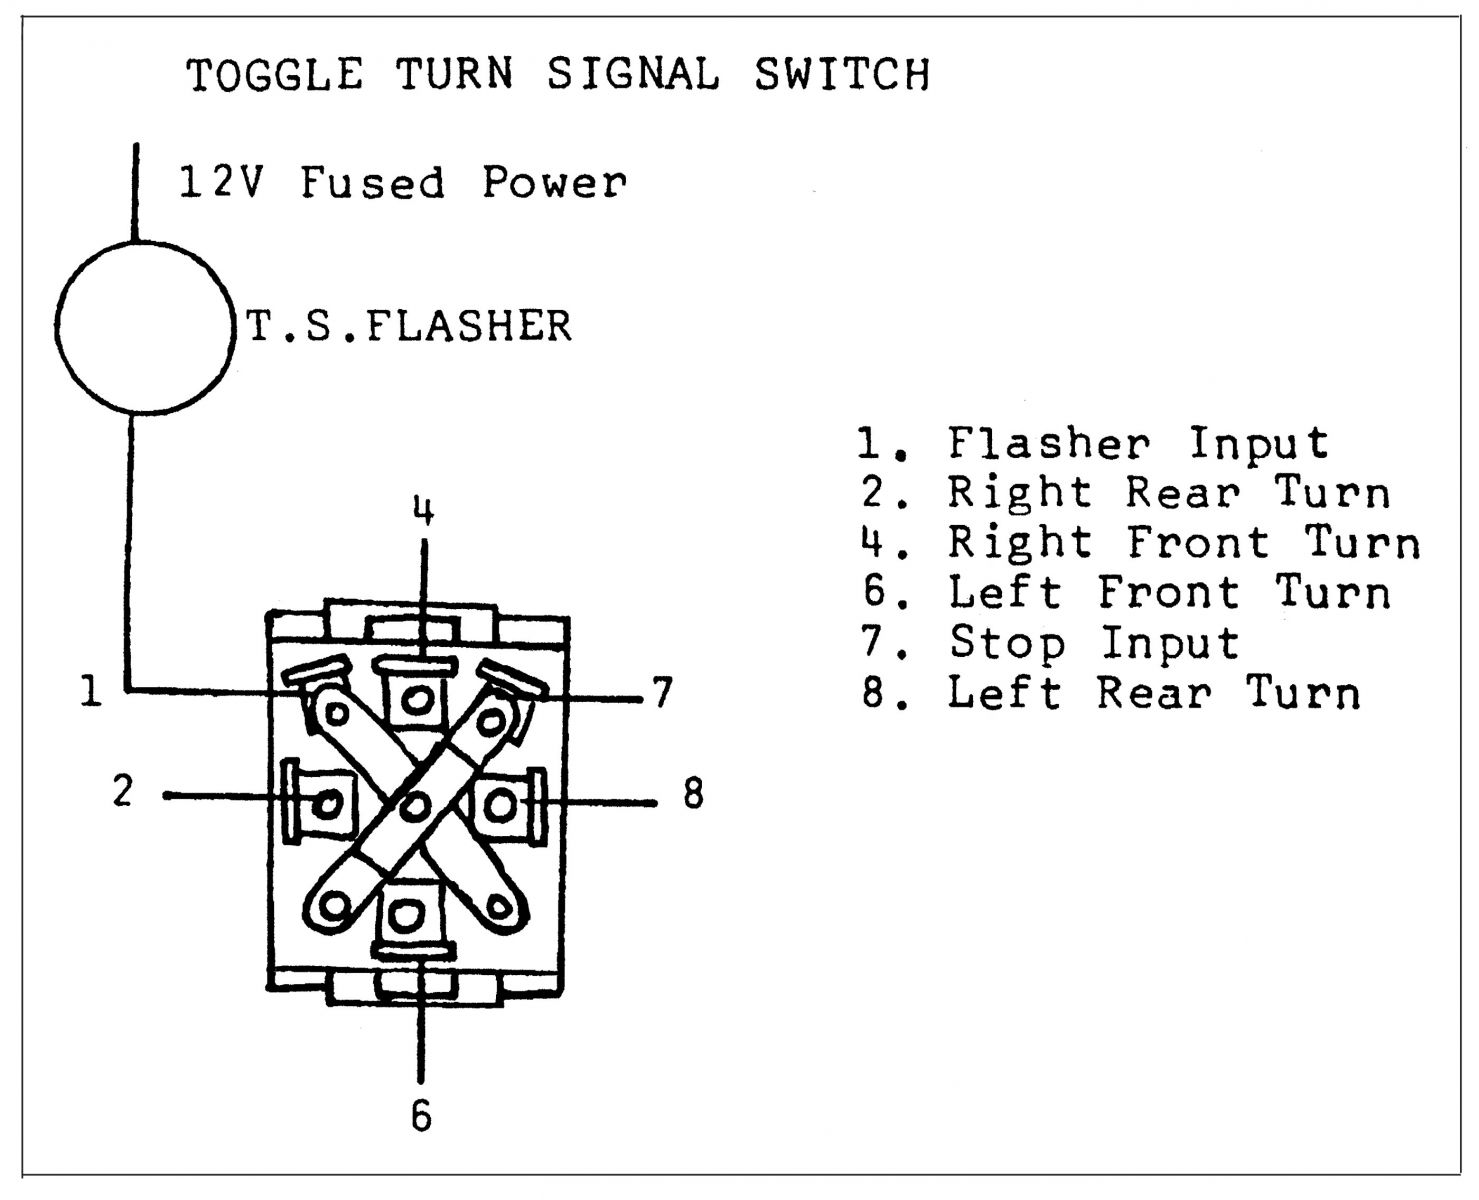 Turn Signals For Early Hot Rods Hotrod Hotline Horn Wiring Diagram Turn  Signal Kit Wiring Diagram